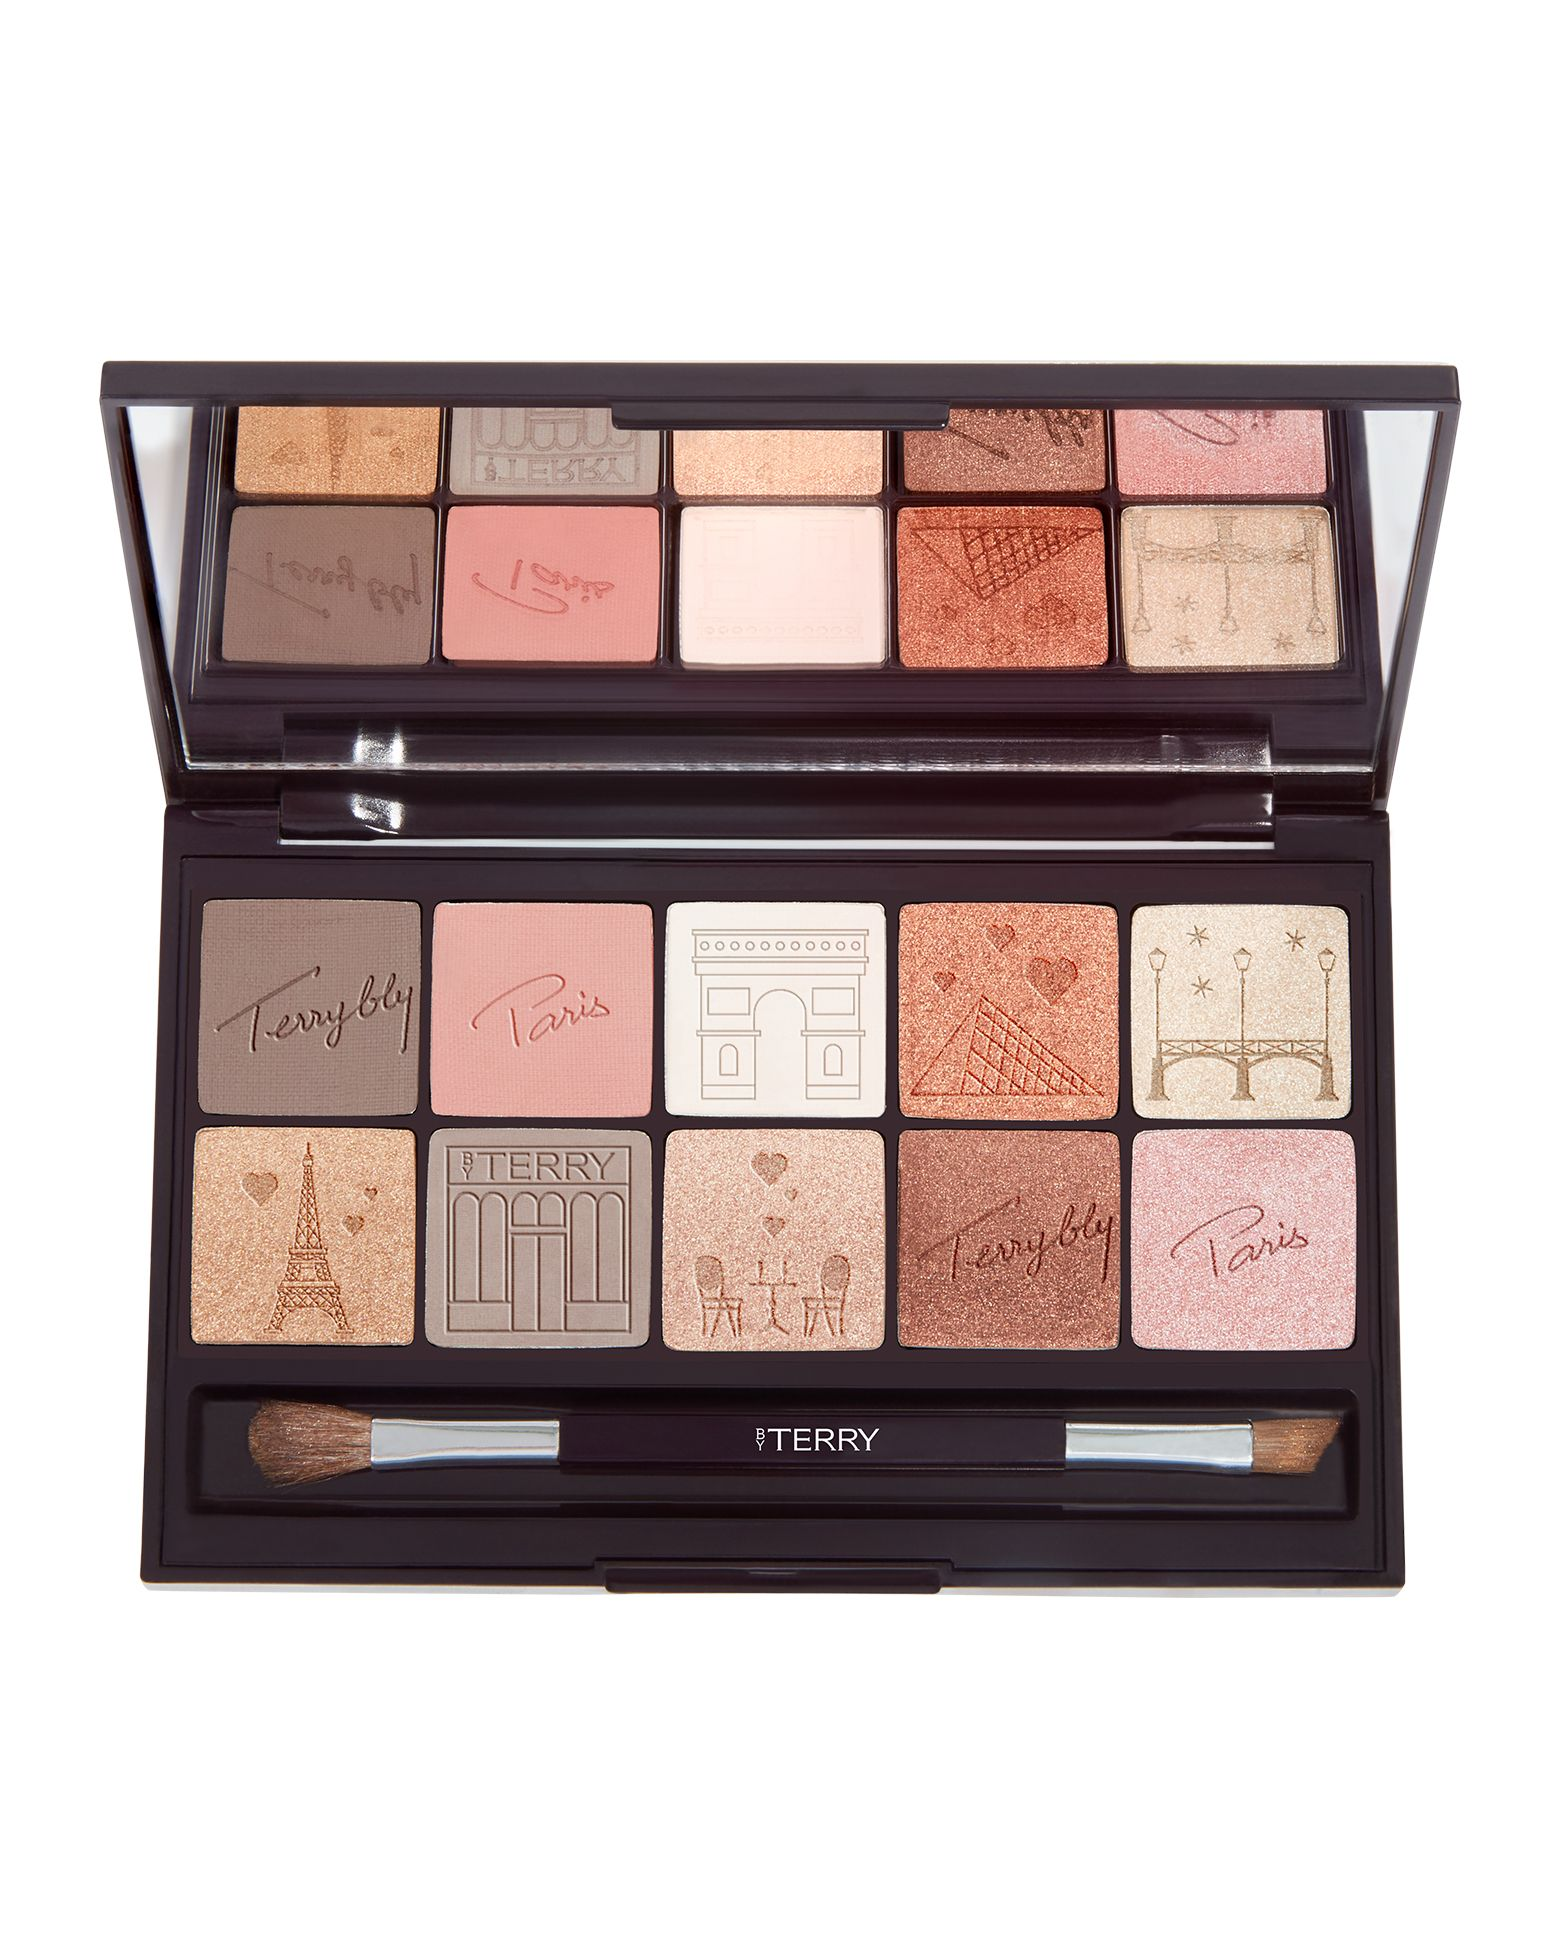 BY TERRY V.I.P Expert Palette Paris By Light in 2020